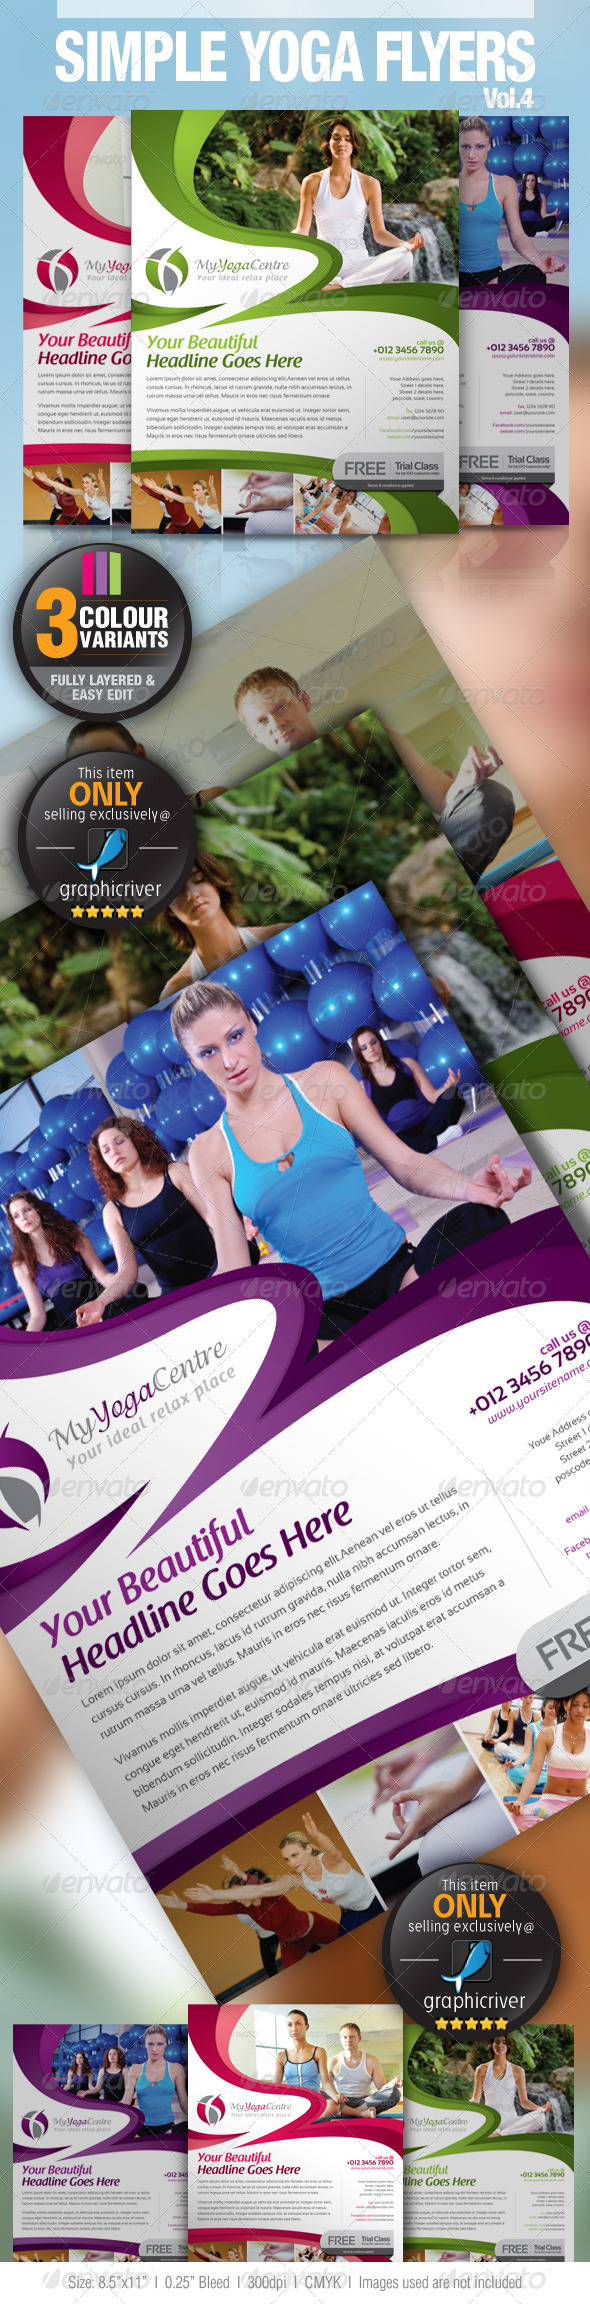 Simple Yoga Flyer Vol.4 - Commerce Flyers